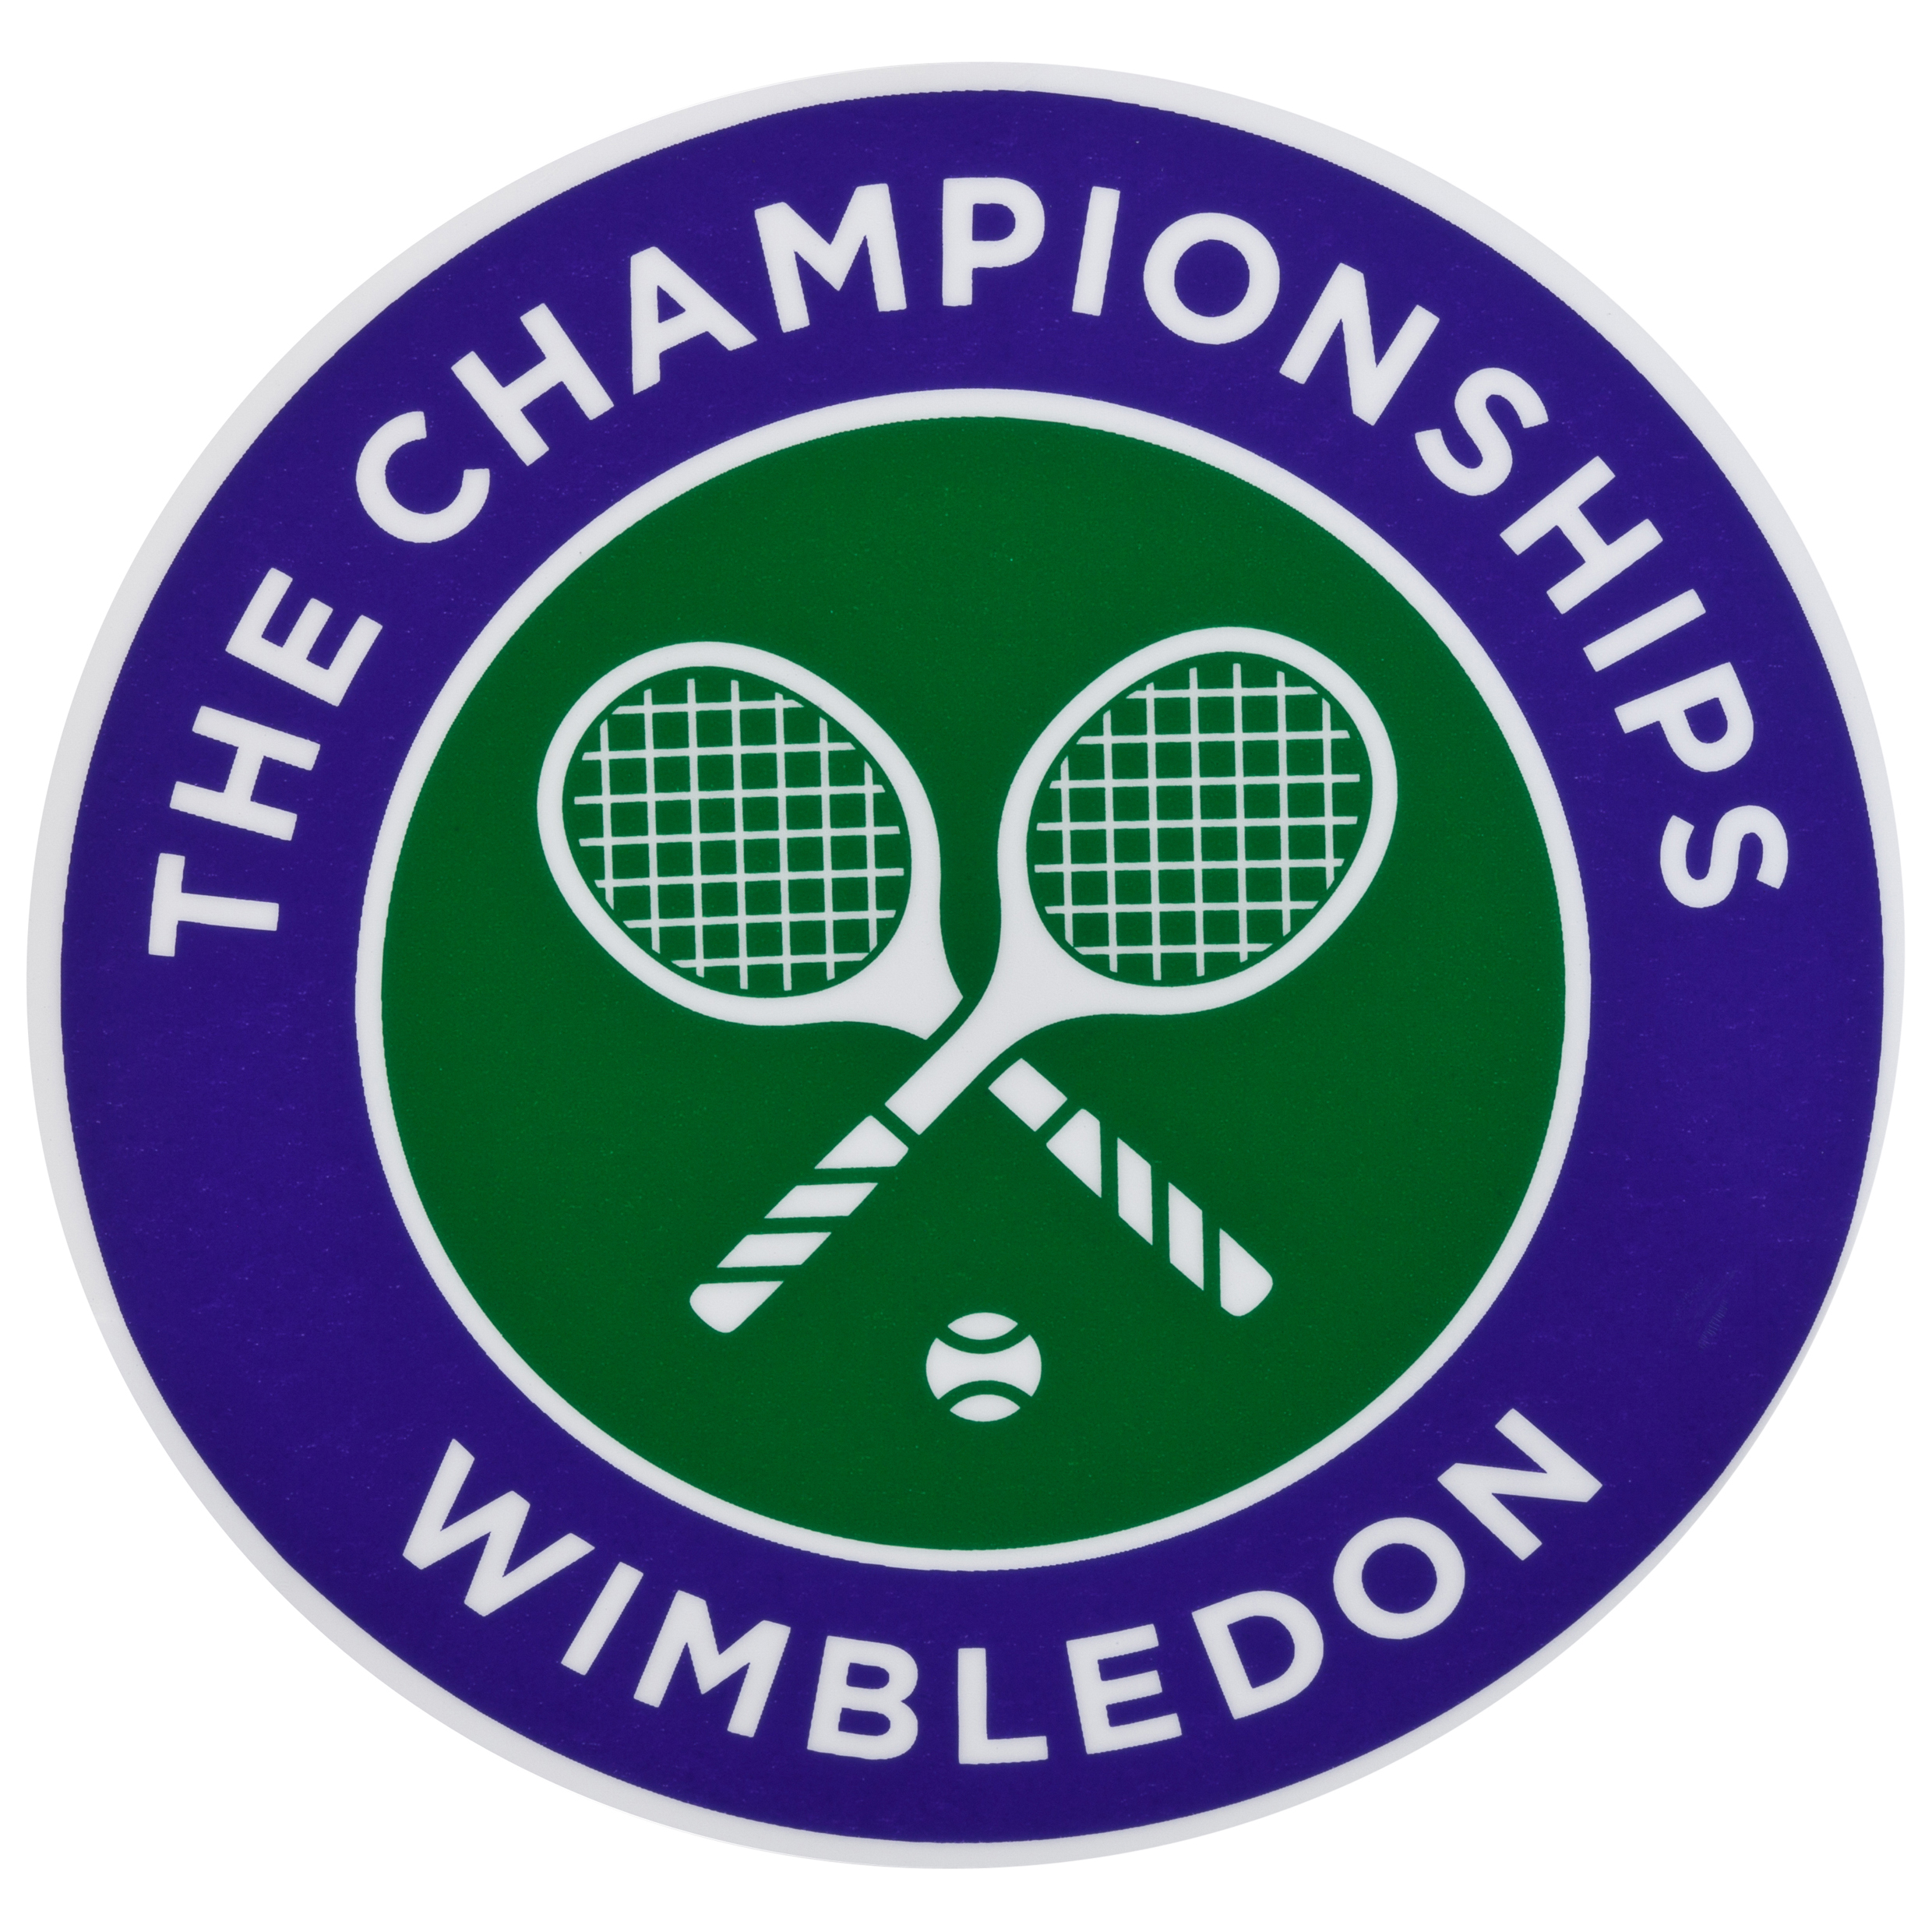 Wimbledon Car Sticker